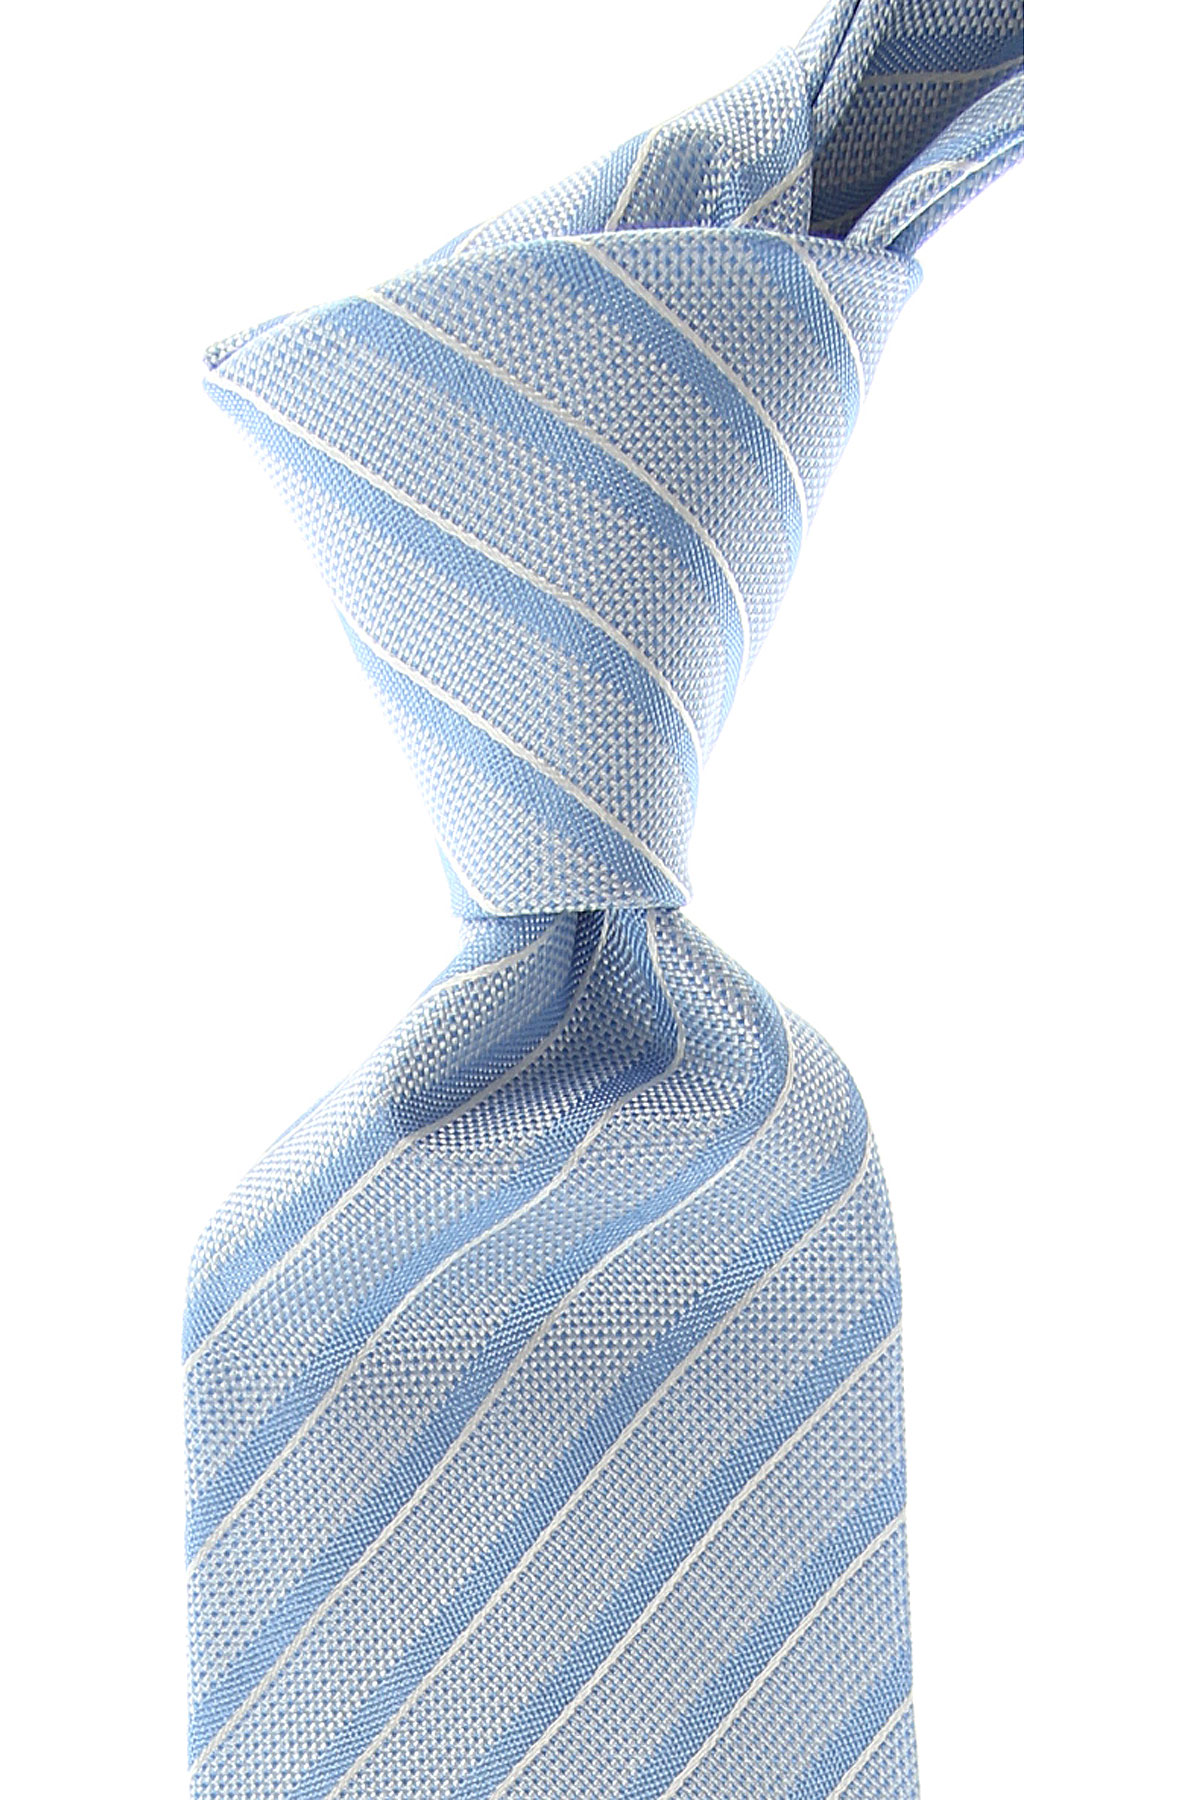 Giorgio_Armani_Ties_On_Sale_Light_Blue_Silk_2019